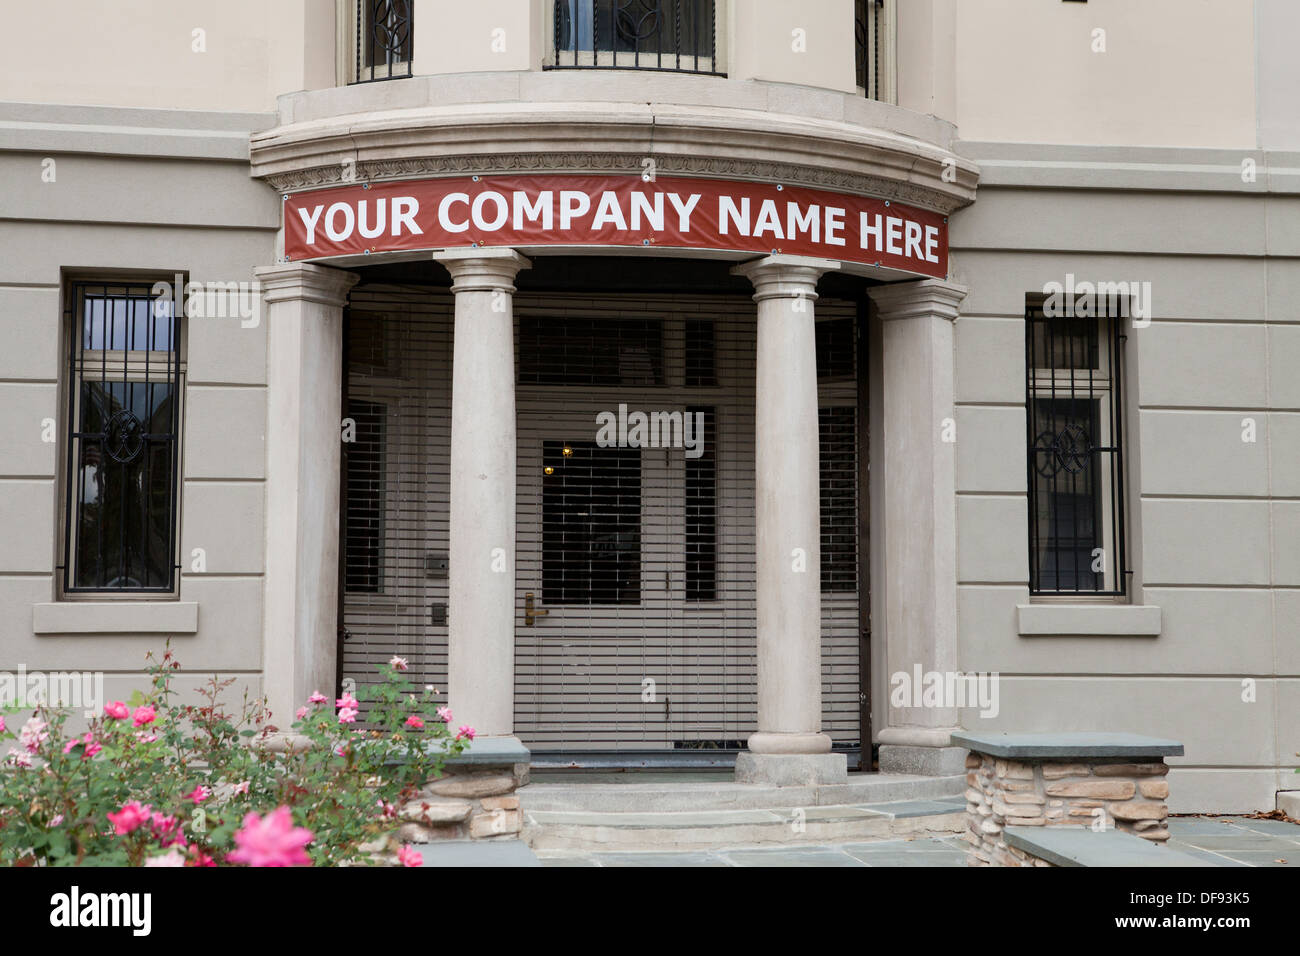 Commercial building for sale sign Stock Photo